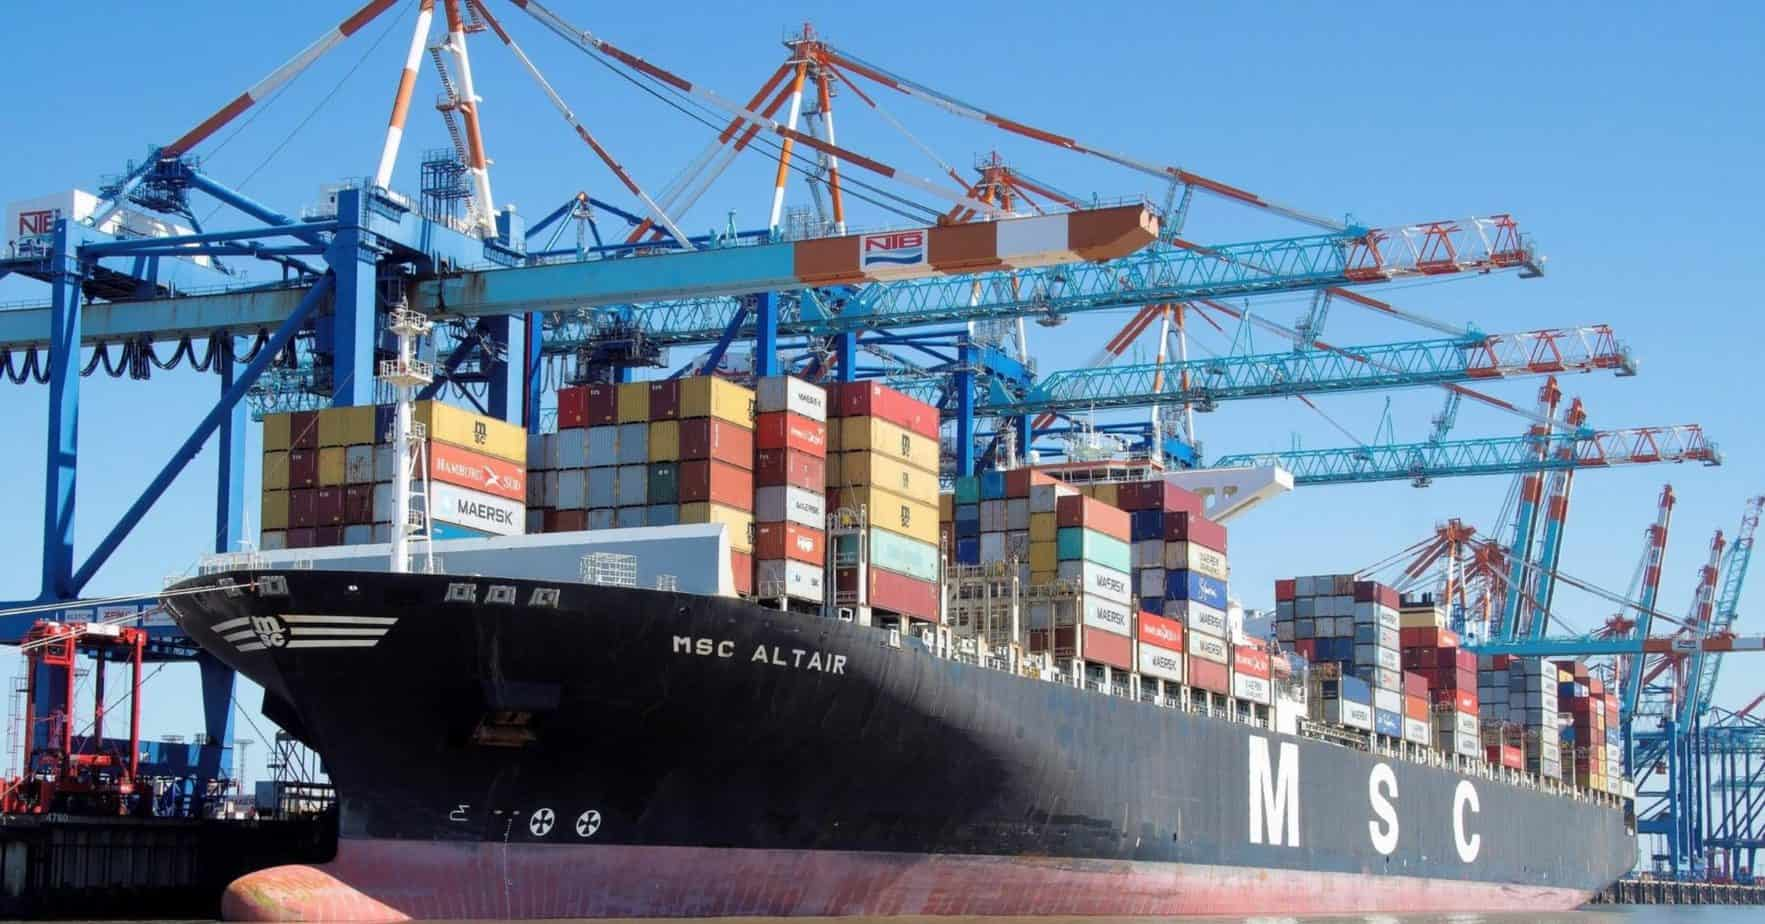 """MSC South Africa confirms that the MSC Altair was originally scheduled to sail from the Far East to West Africa. However upon intervention the vessel was diverted to the Port of Ngqura to cater to the export fruit market which is """"very crucial to the economy of South Africa"""". Photo: Supplied/Food For Mzansi"""